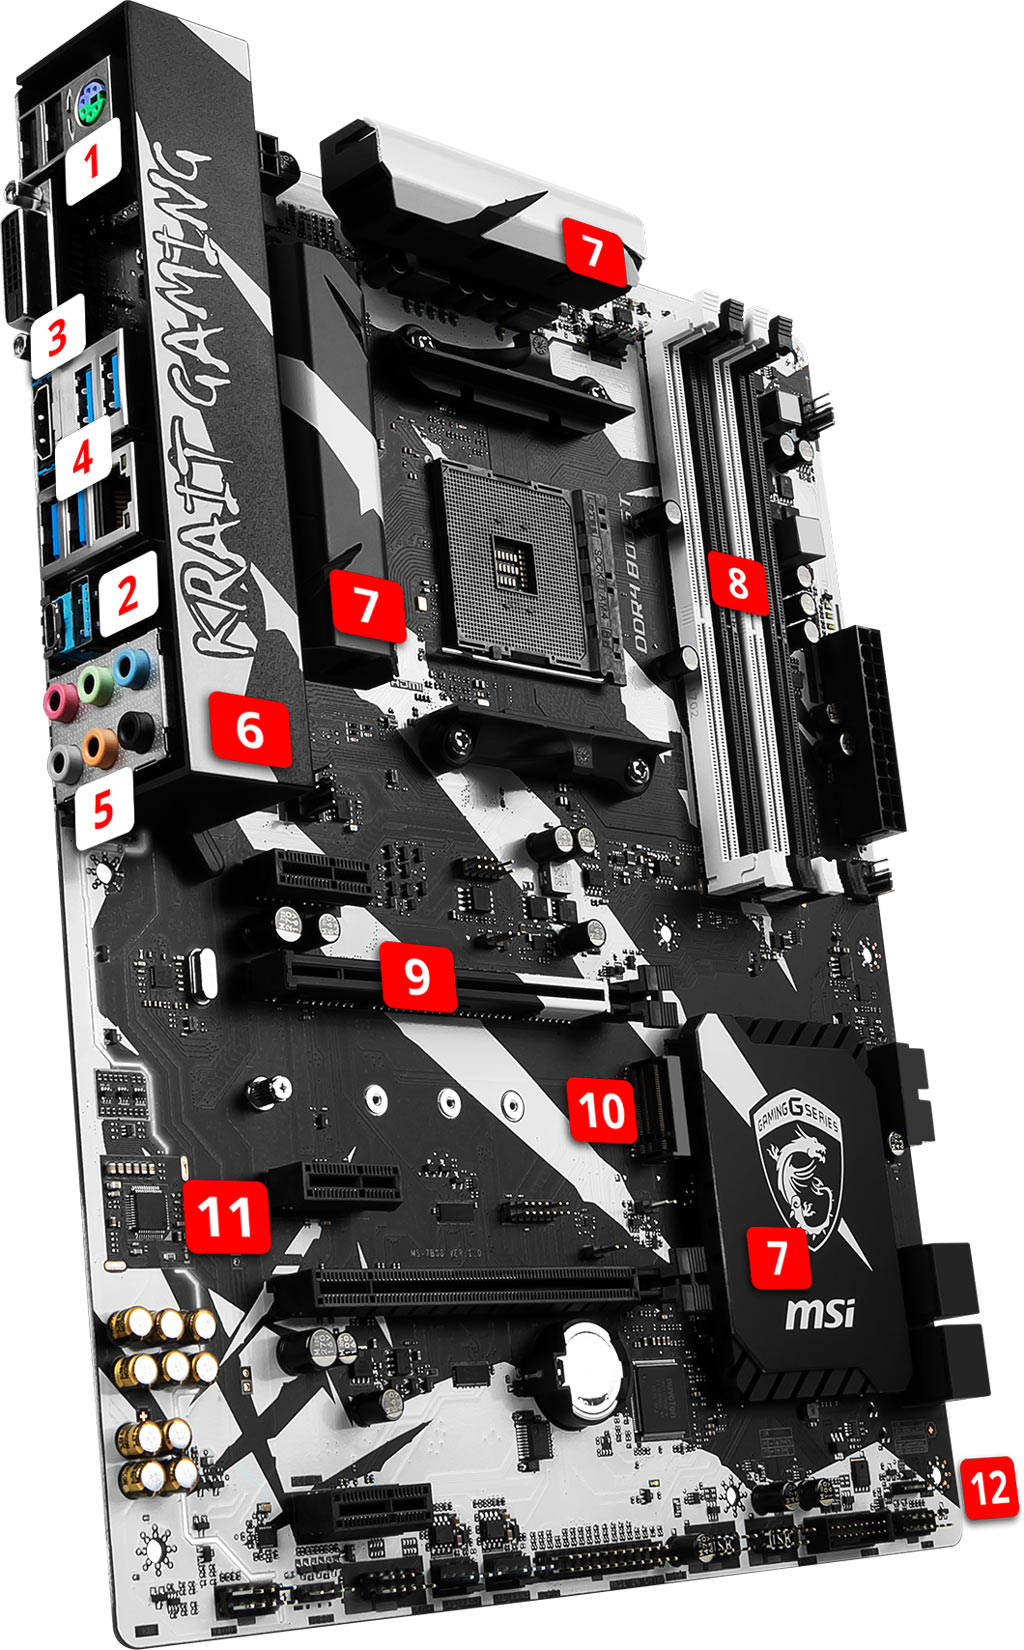 MSI B350 KRAIT GAMING overview